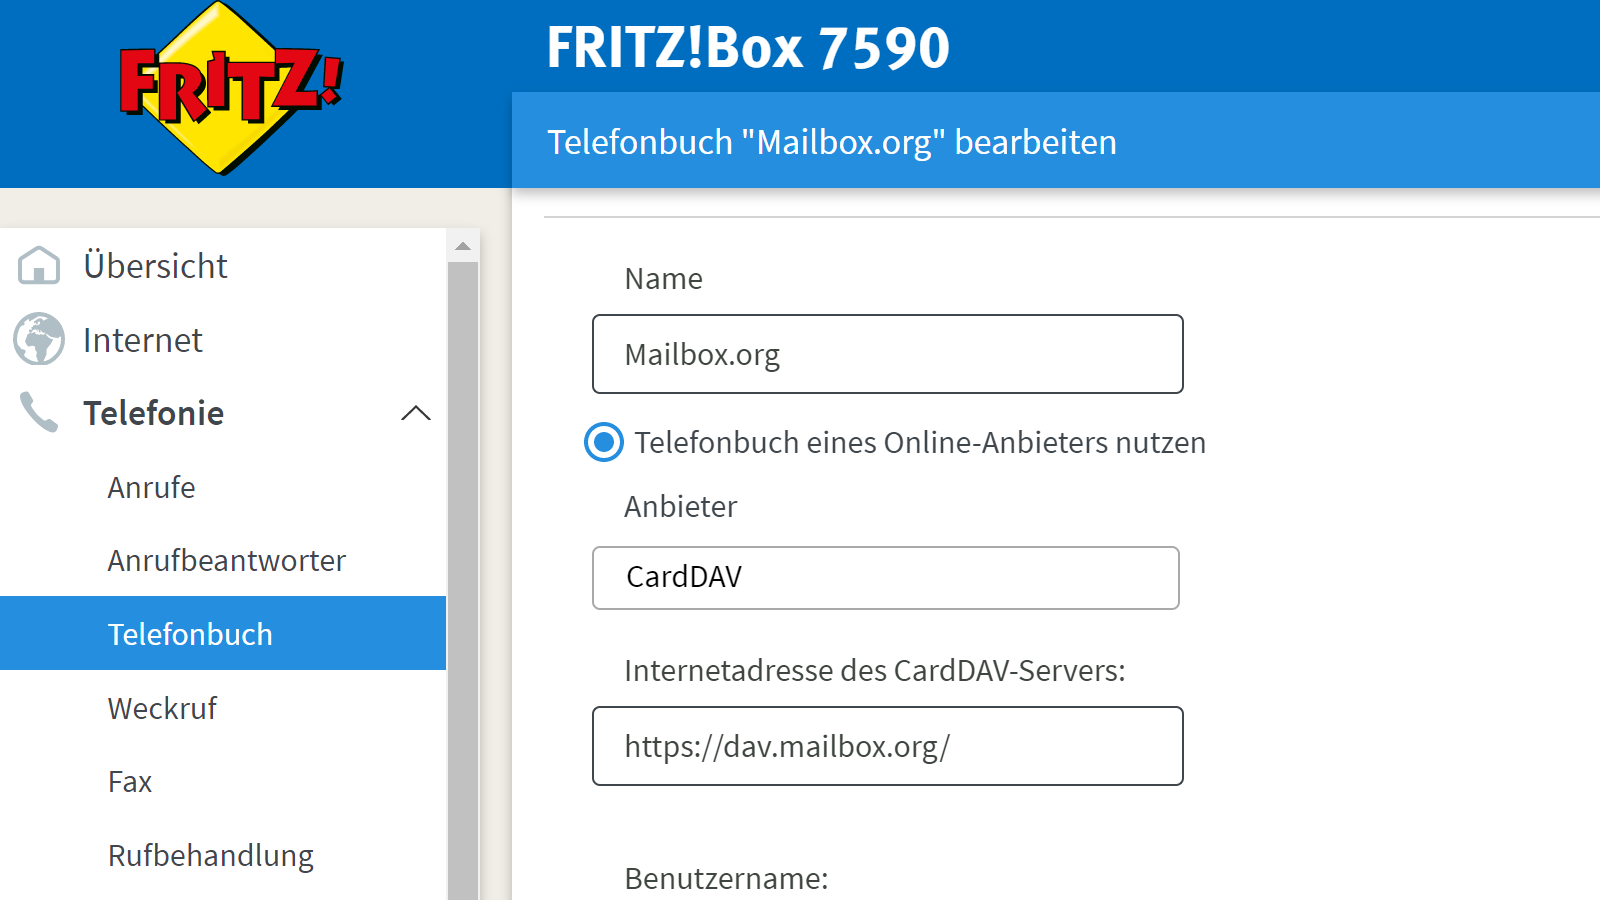 Mailbox.org via CardDAV in der Fritzbox, Screenshot